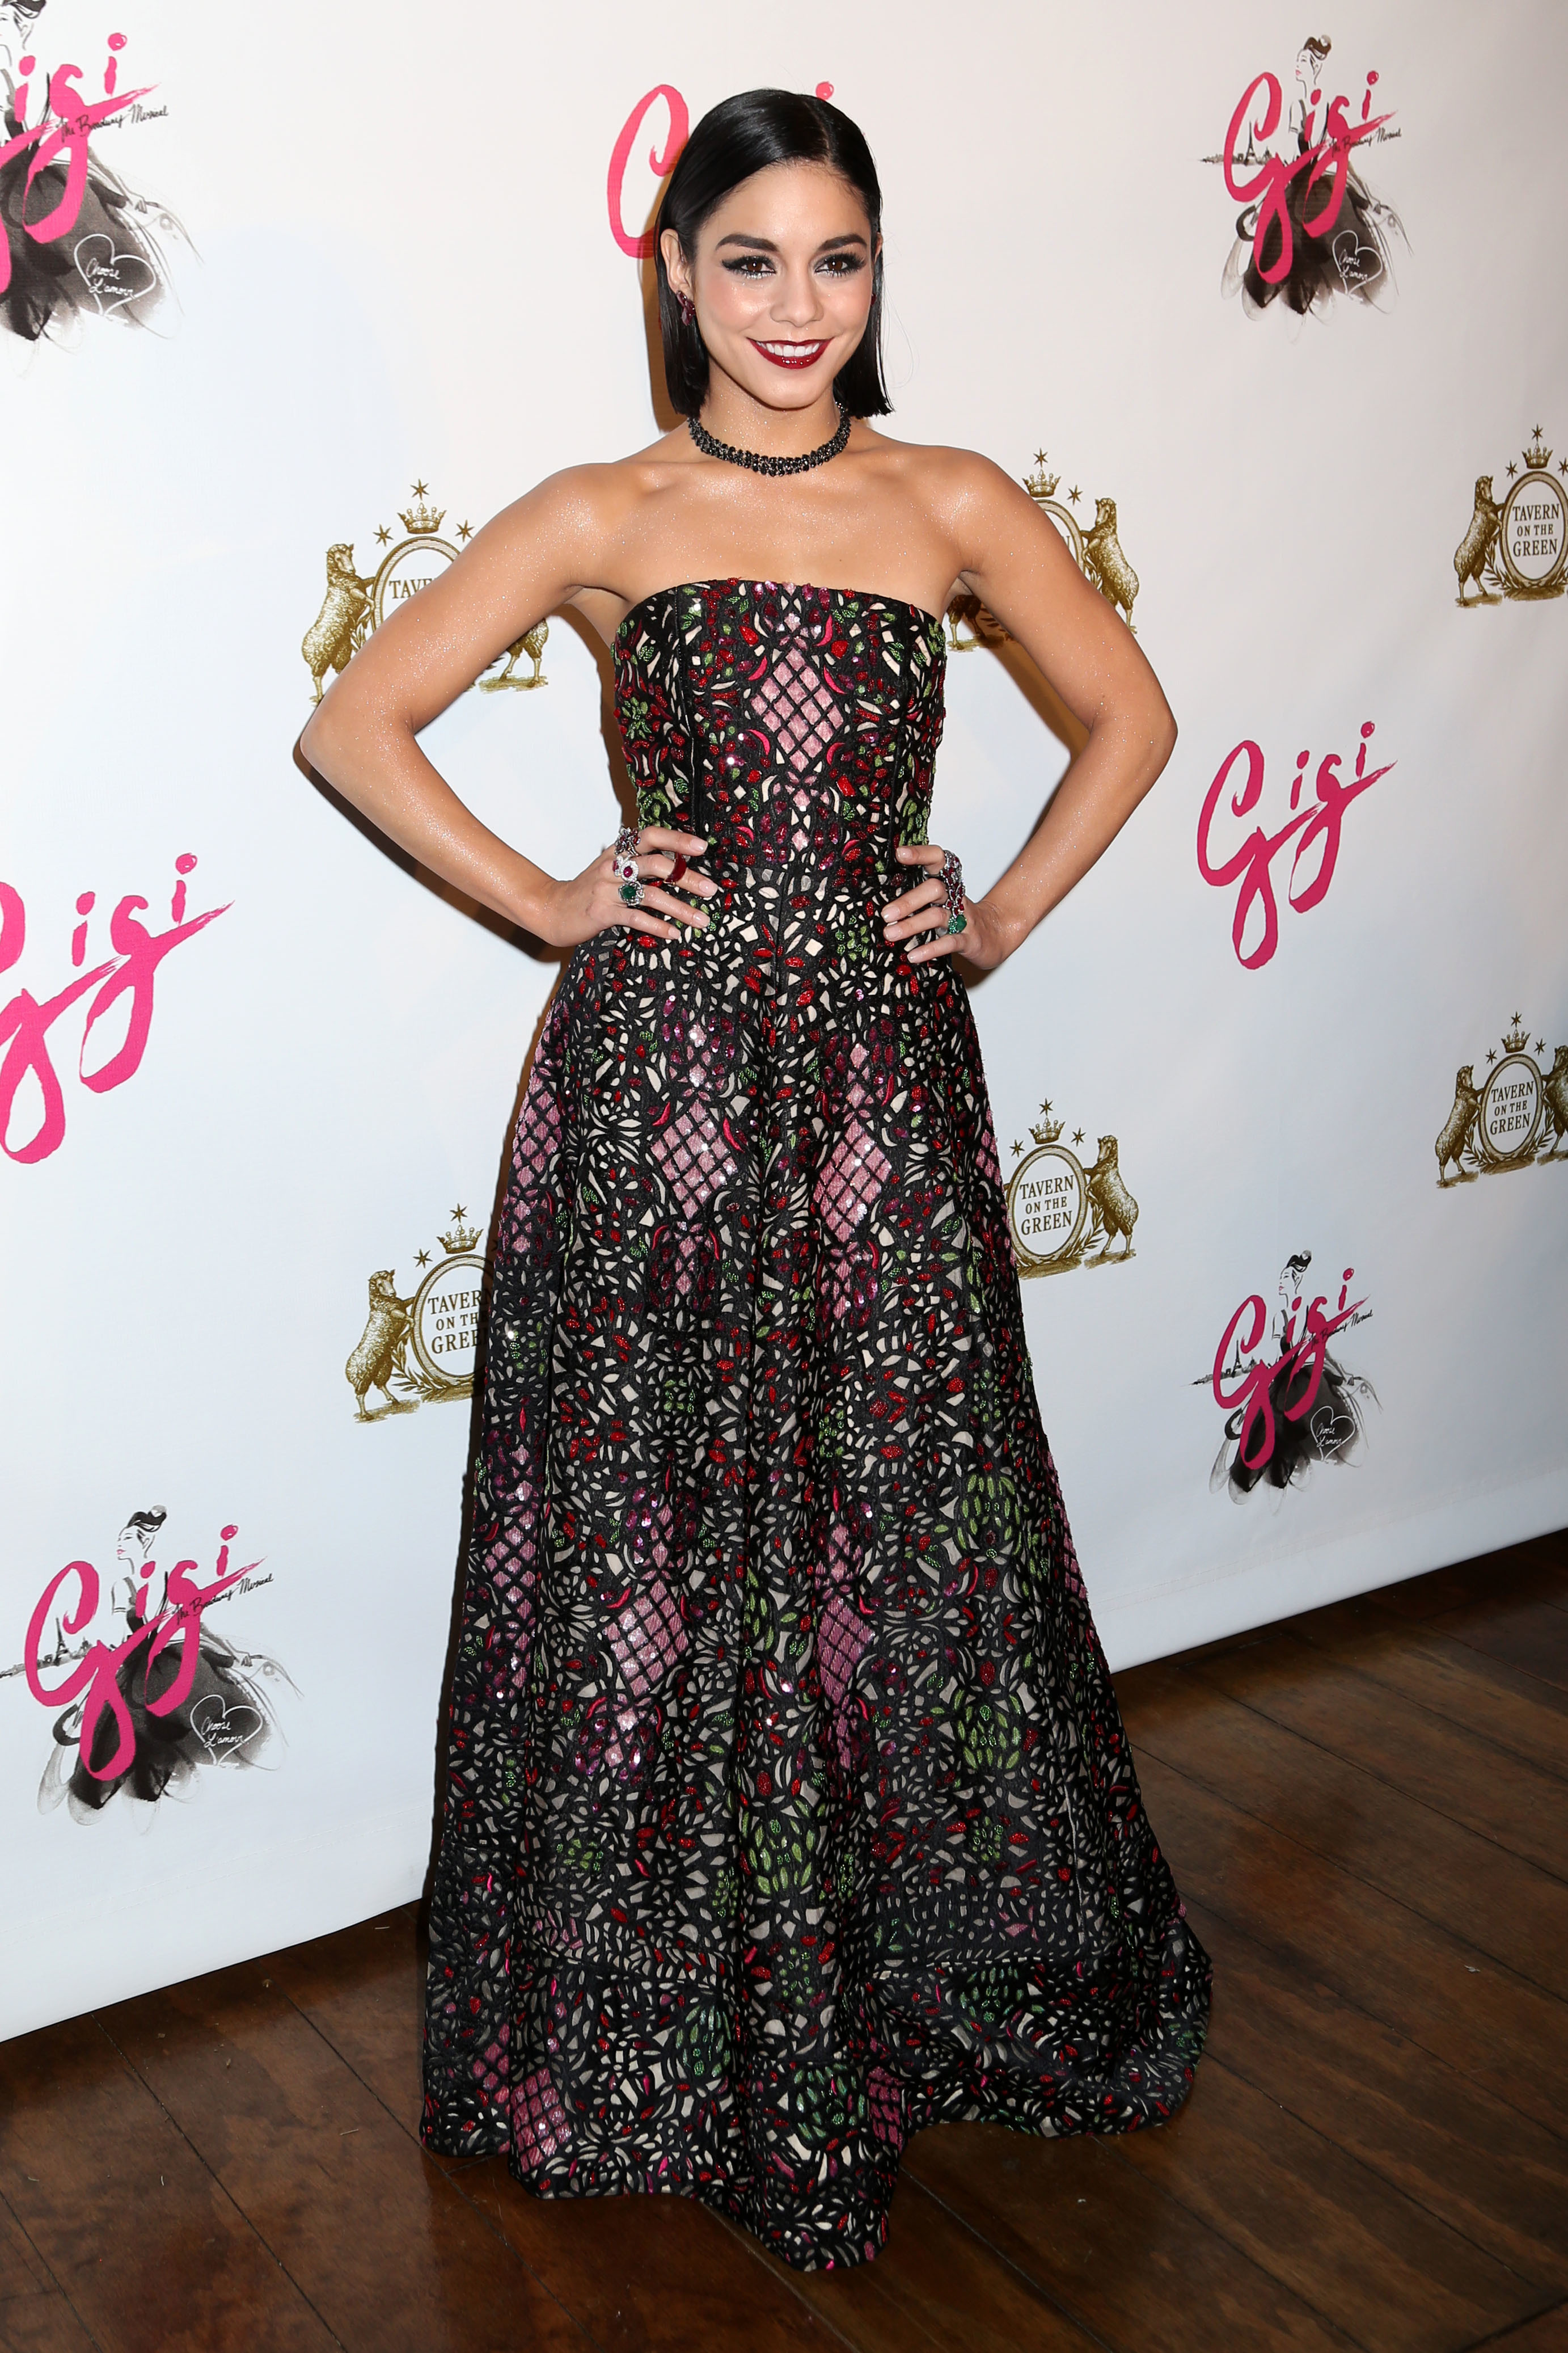 Vanessa Hudgens opens up about her gay rights advocacy